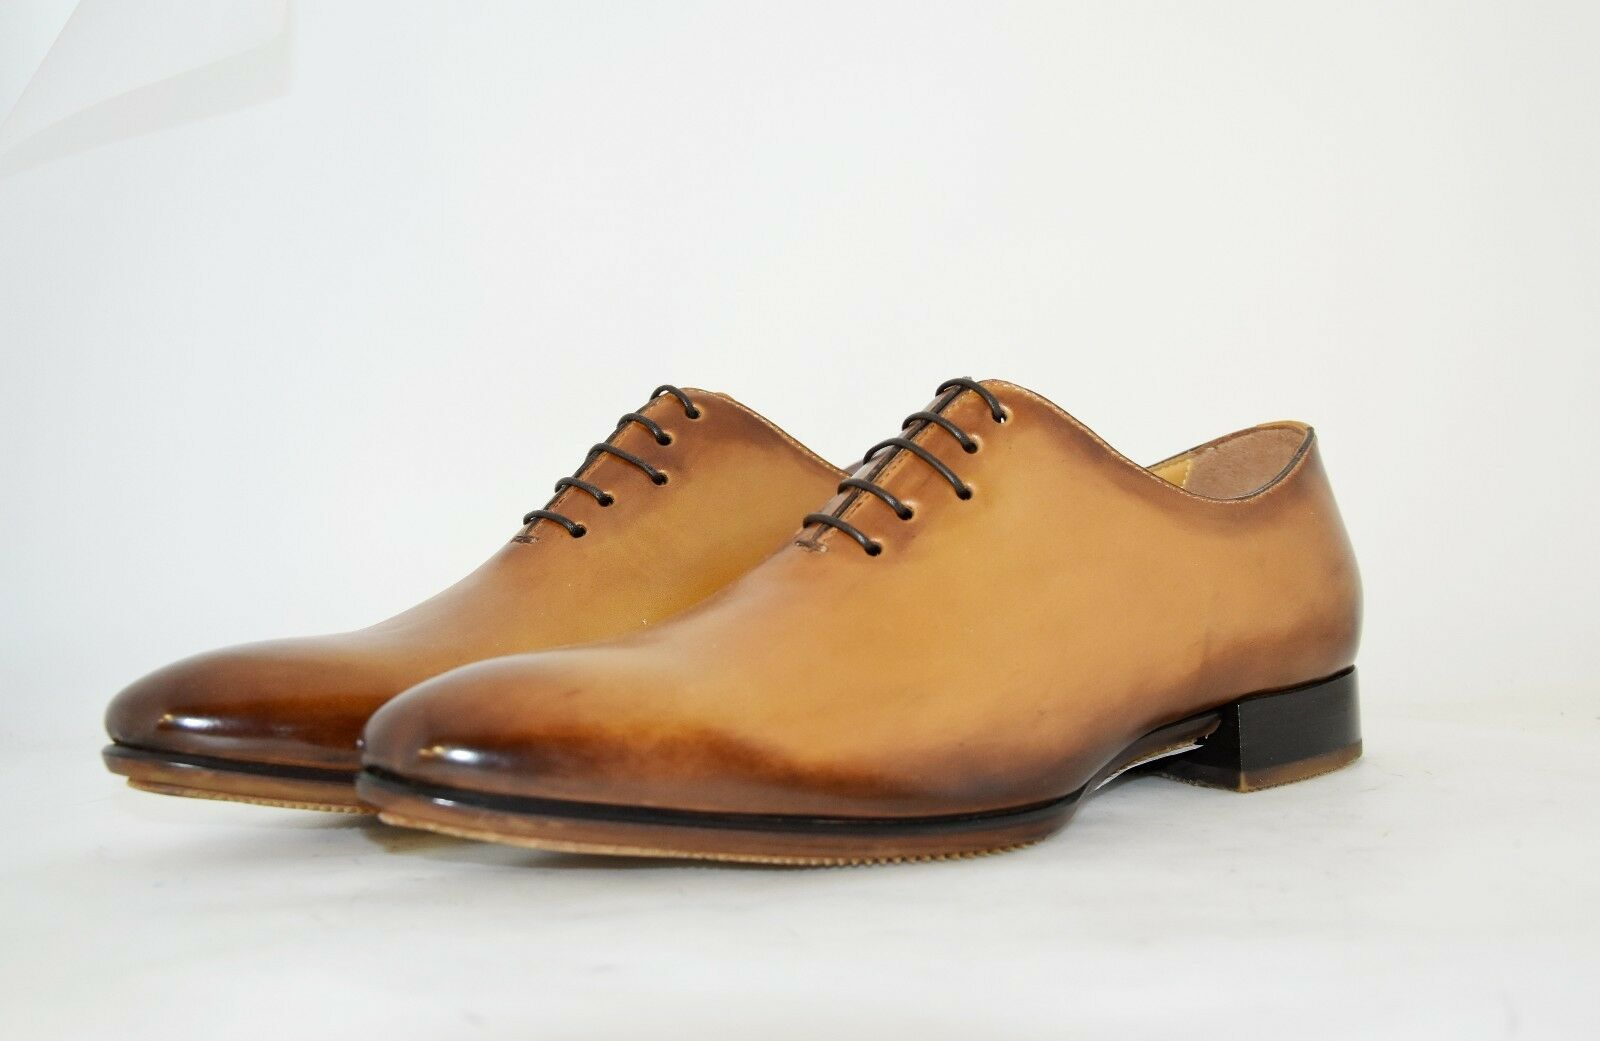 MAN-8eu-9us-PLANE SOLE-SOLA OXFORD-TAN CALF-VITELLO COL. CUOIO-RUBBER SOLE-SOLA MAN-8eu-9us-PLANE GOMMA 6cd51c